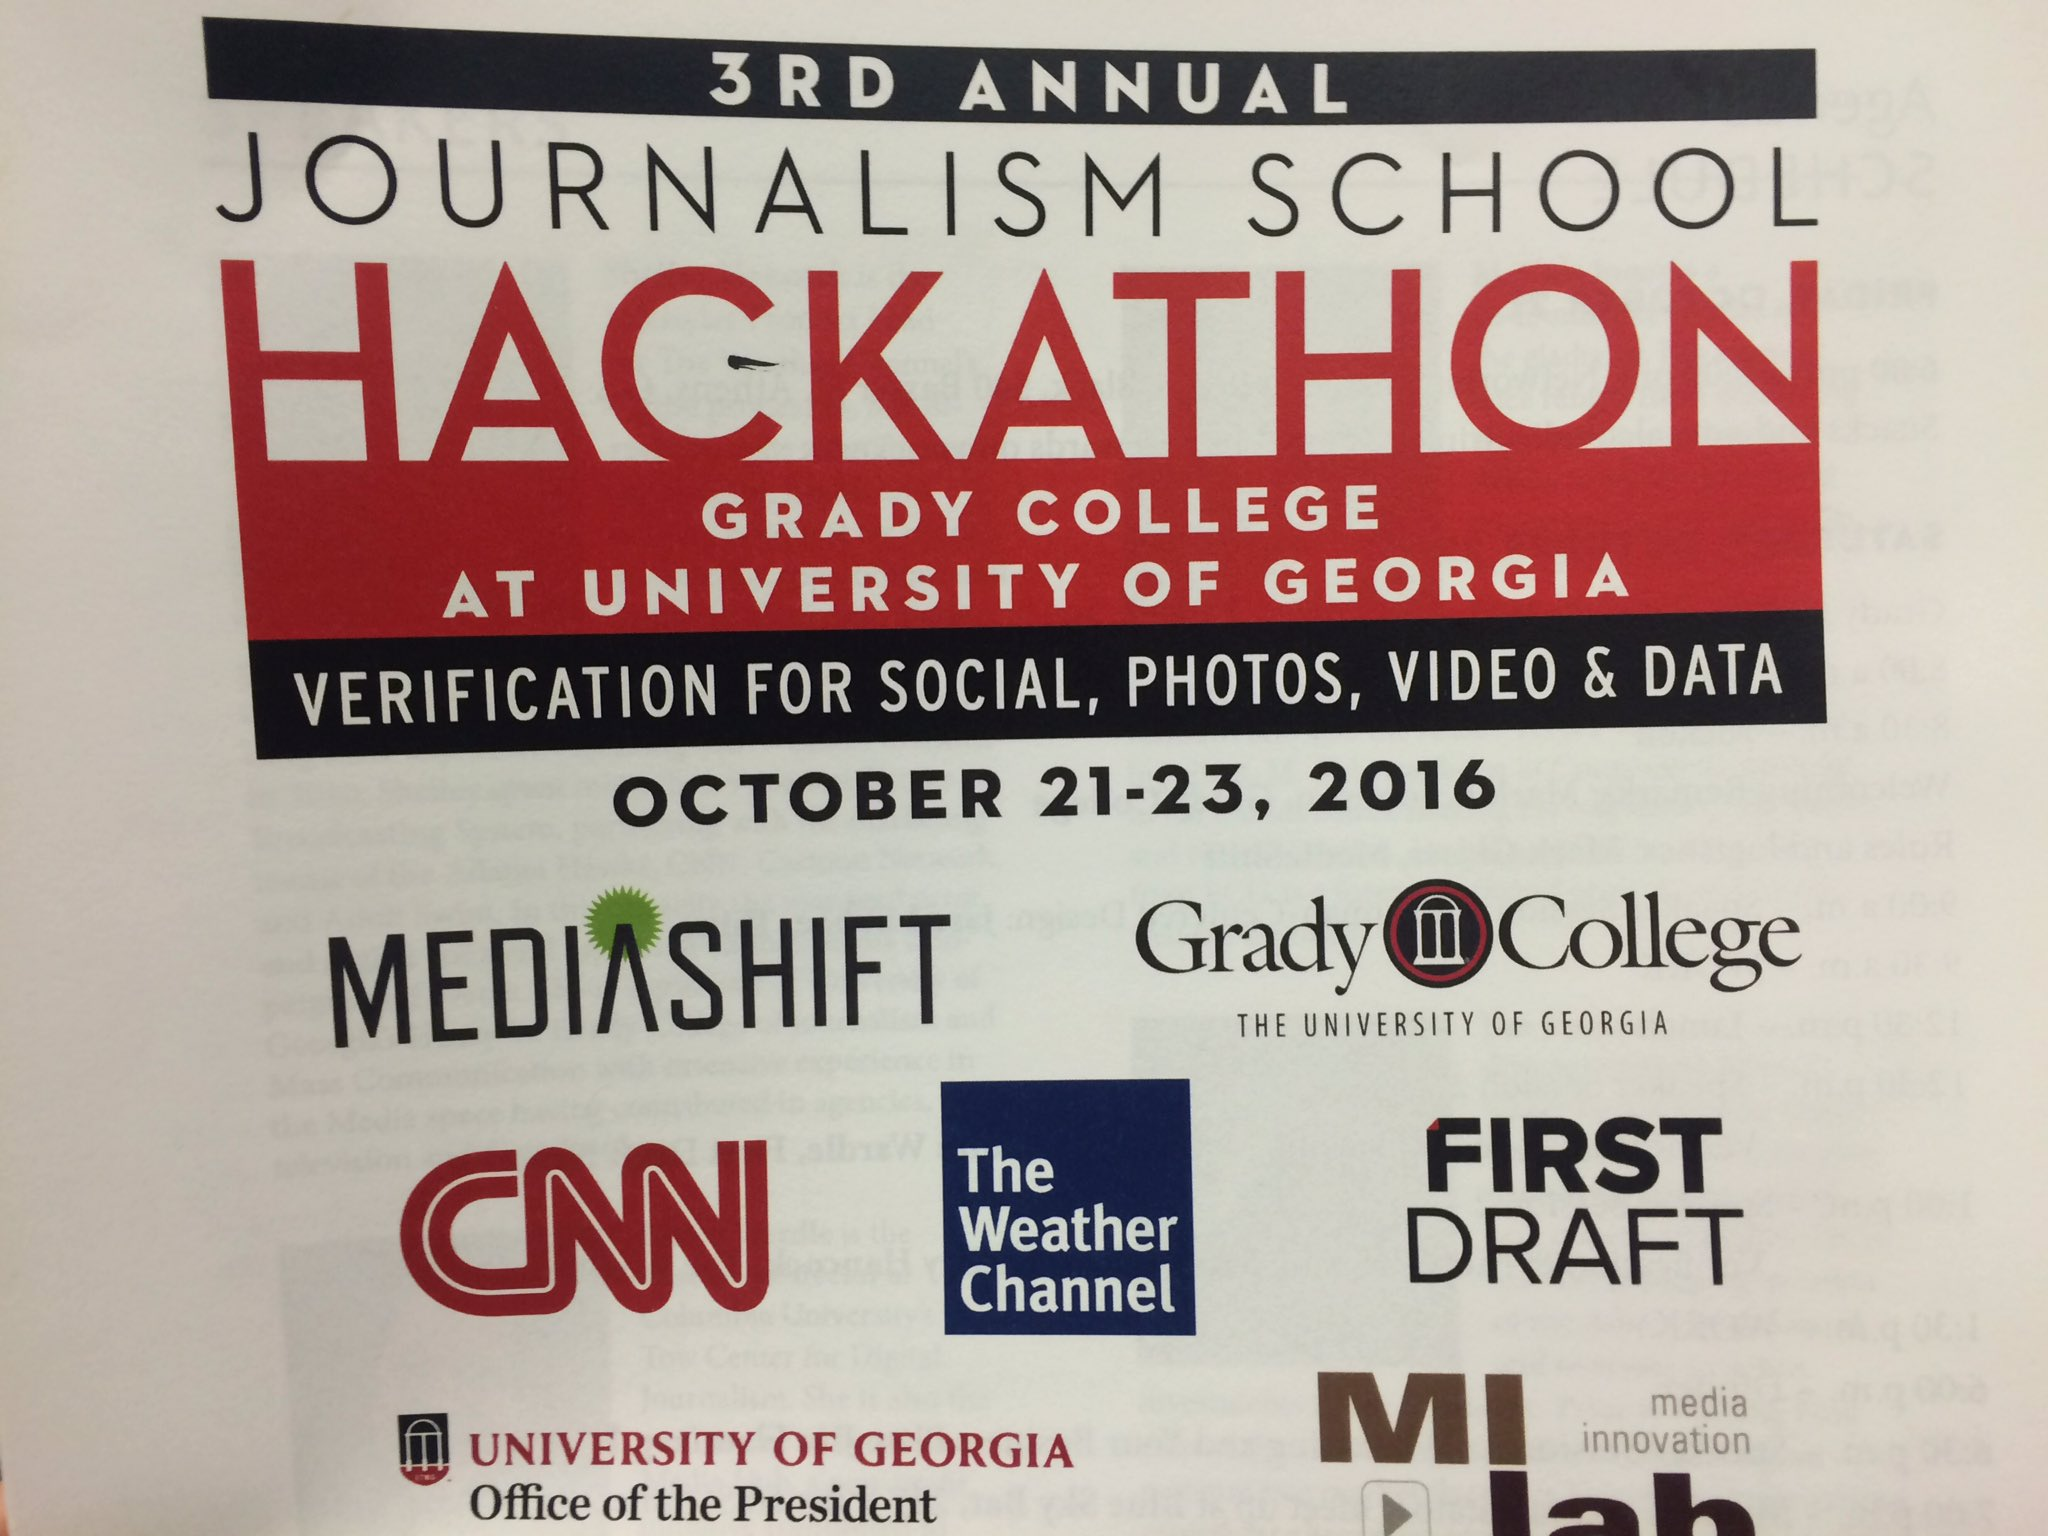 Thumbnail for 3rd Annual J-School Hackathon at UGA